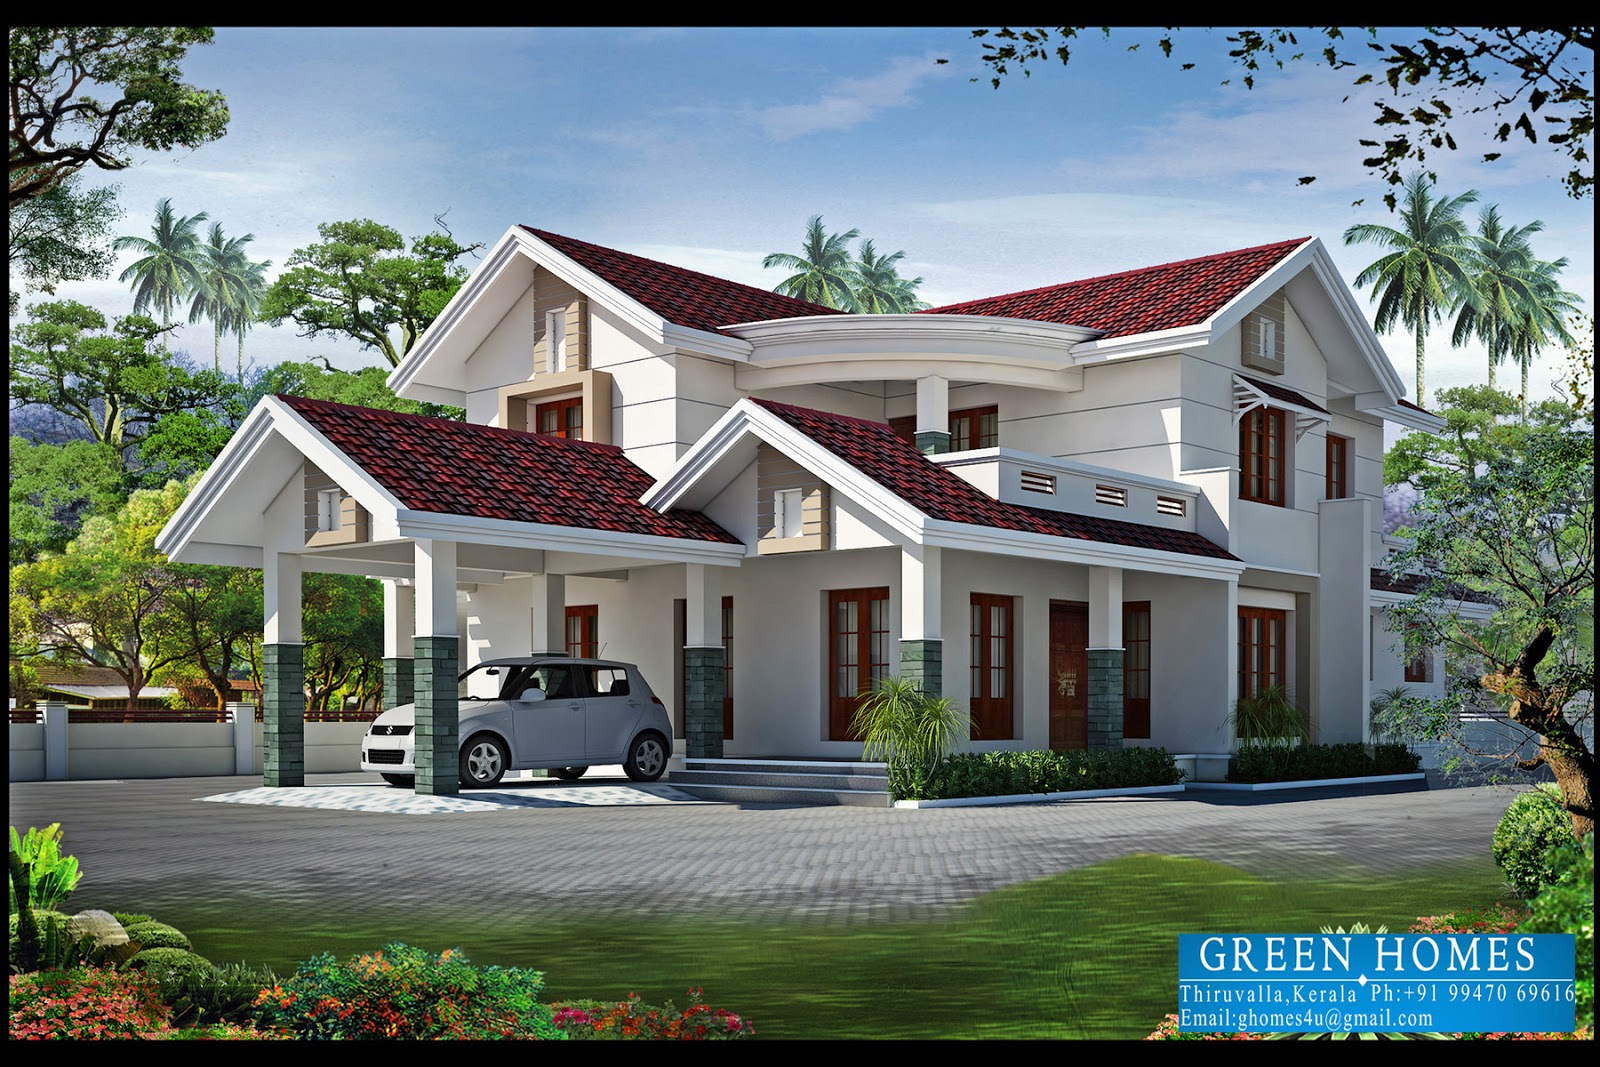 Green homes 4bhk kerala home design 2550 for New home designs pictures